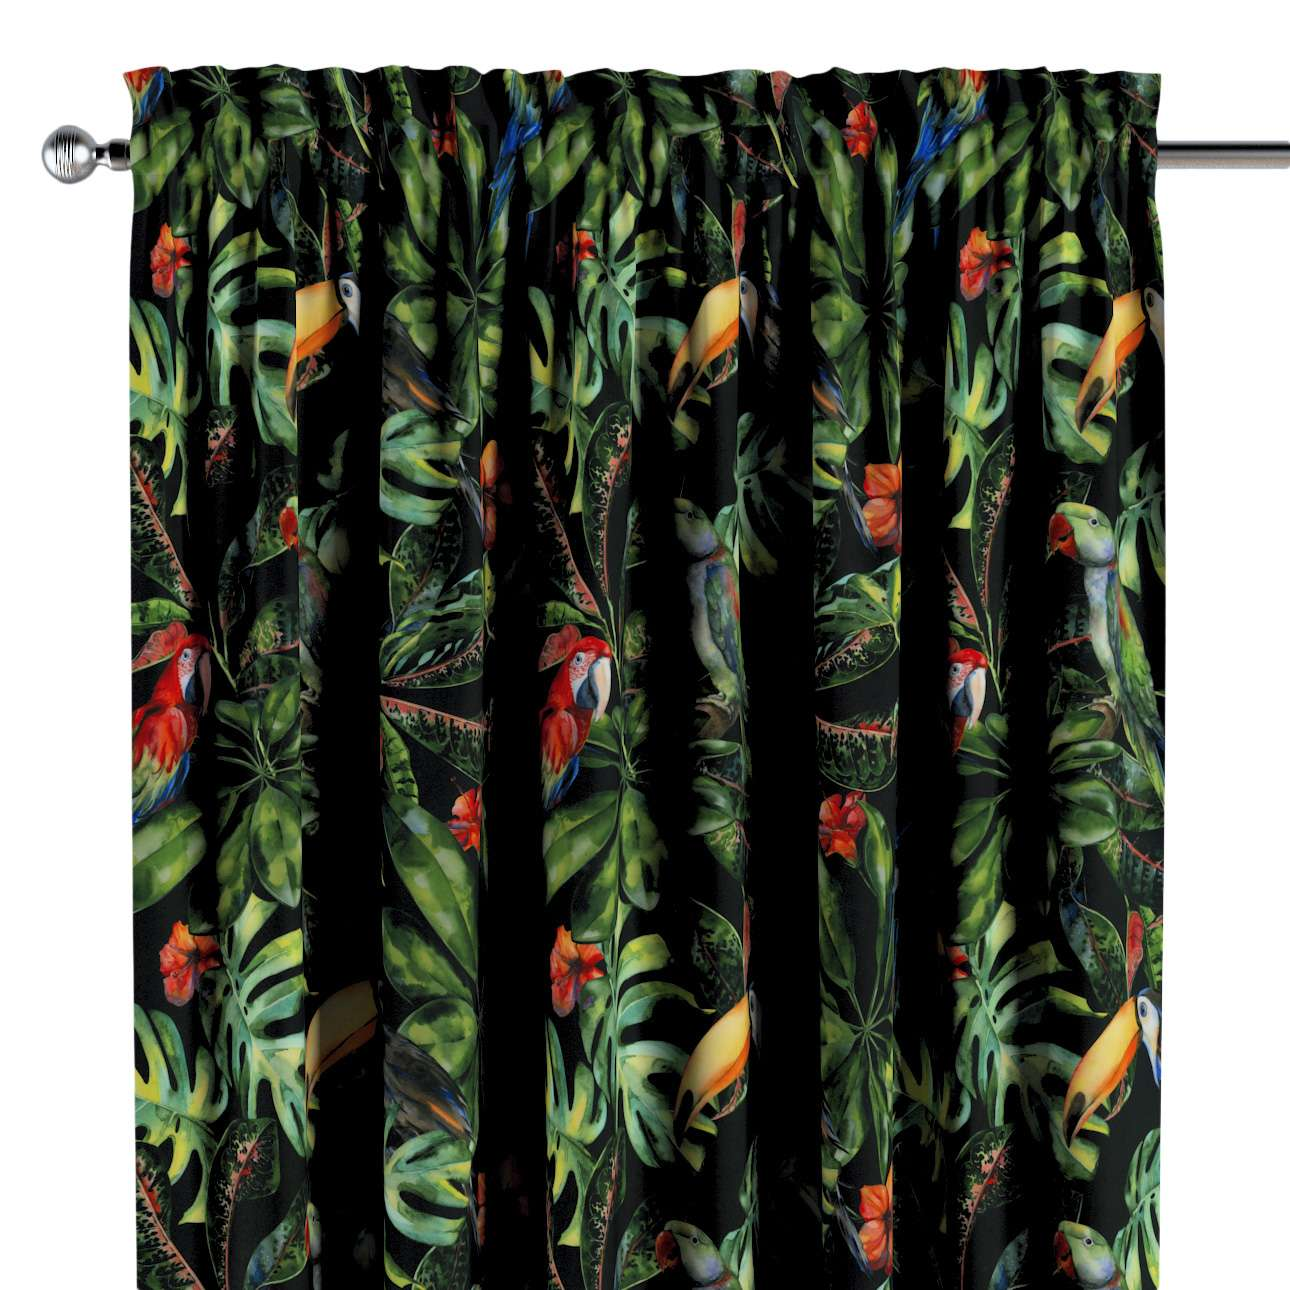 Slot and frill curtains in collection Velvet, fabric: 704-28